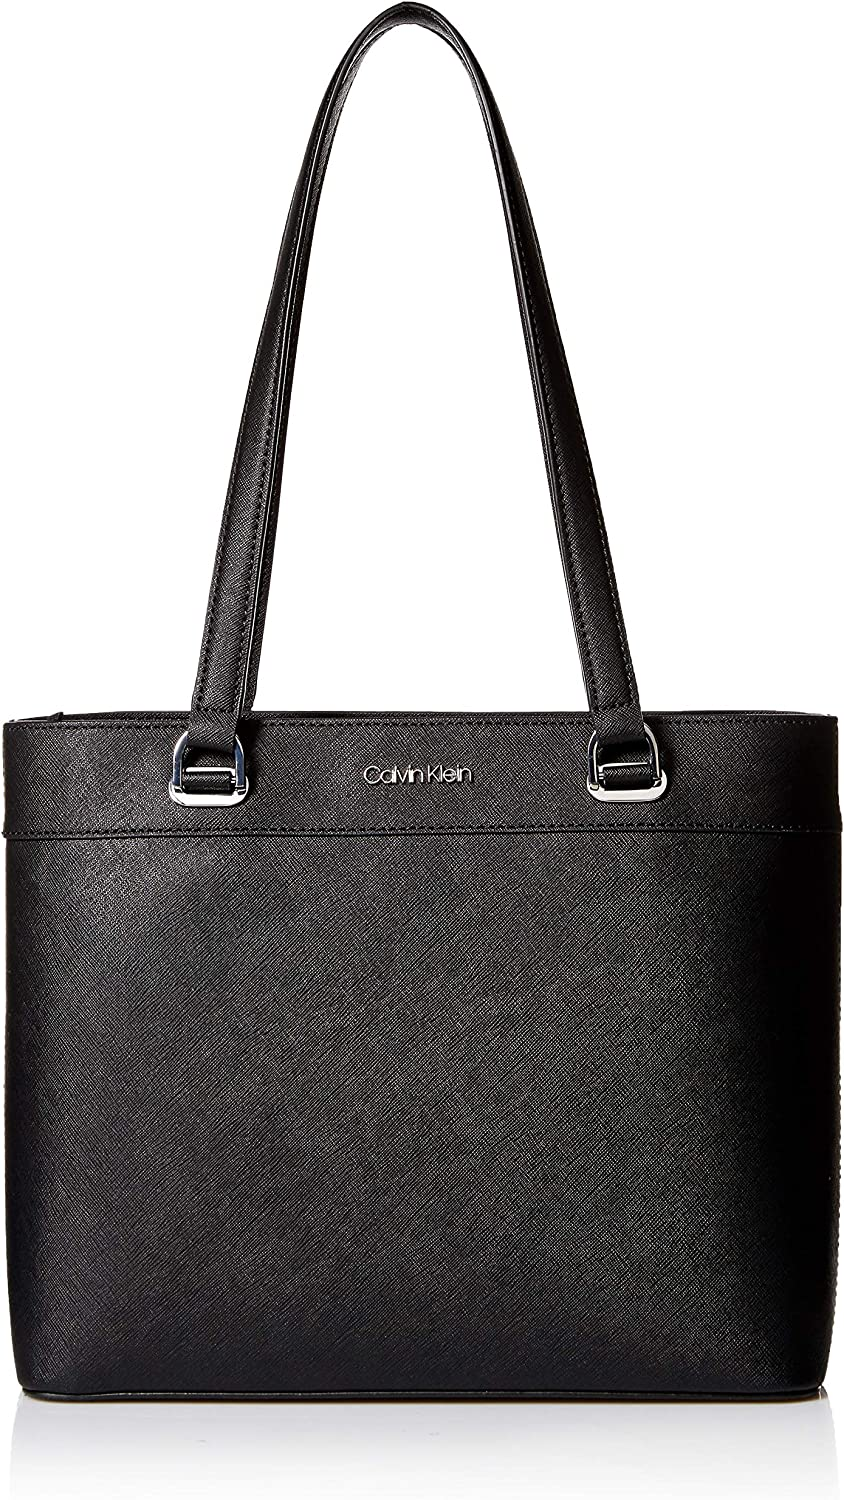 Calvin Klein Mercy Saffiano Leather Organizational North/South Tote